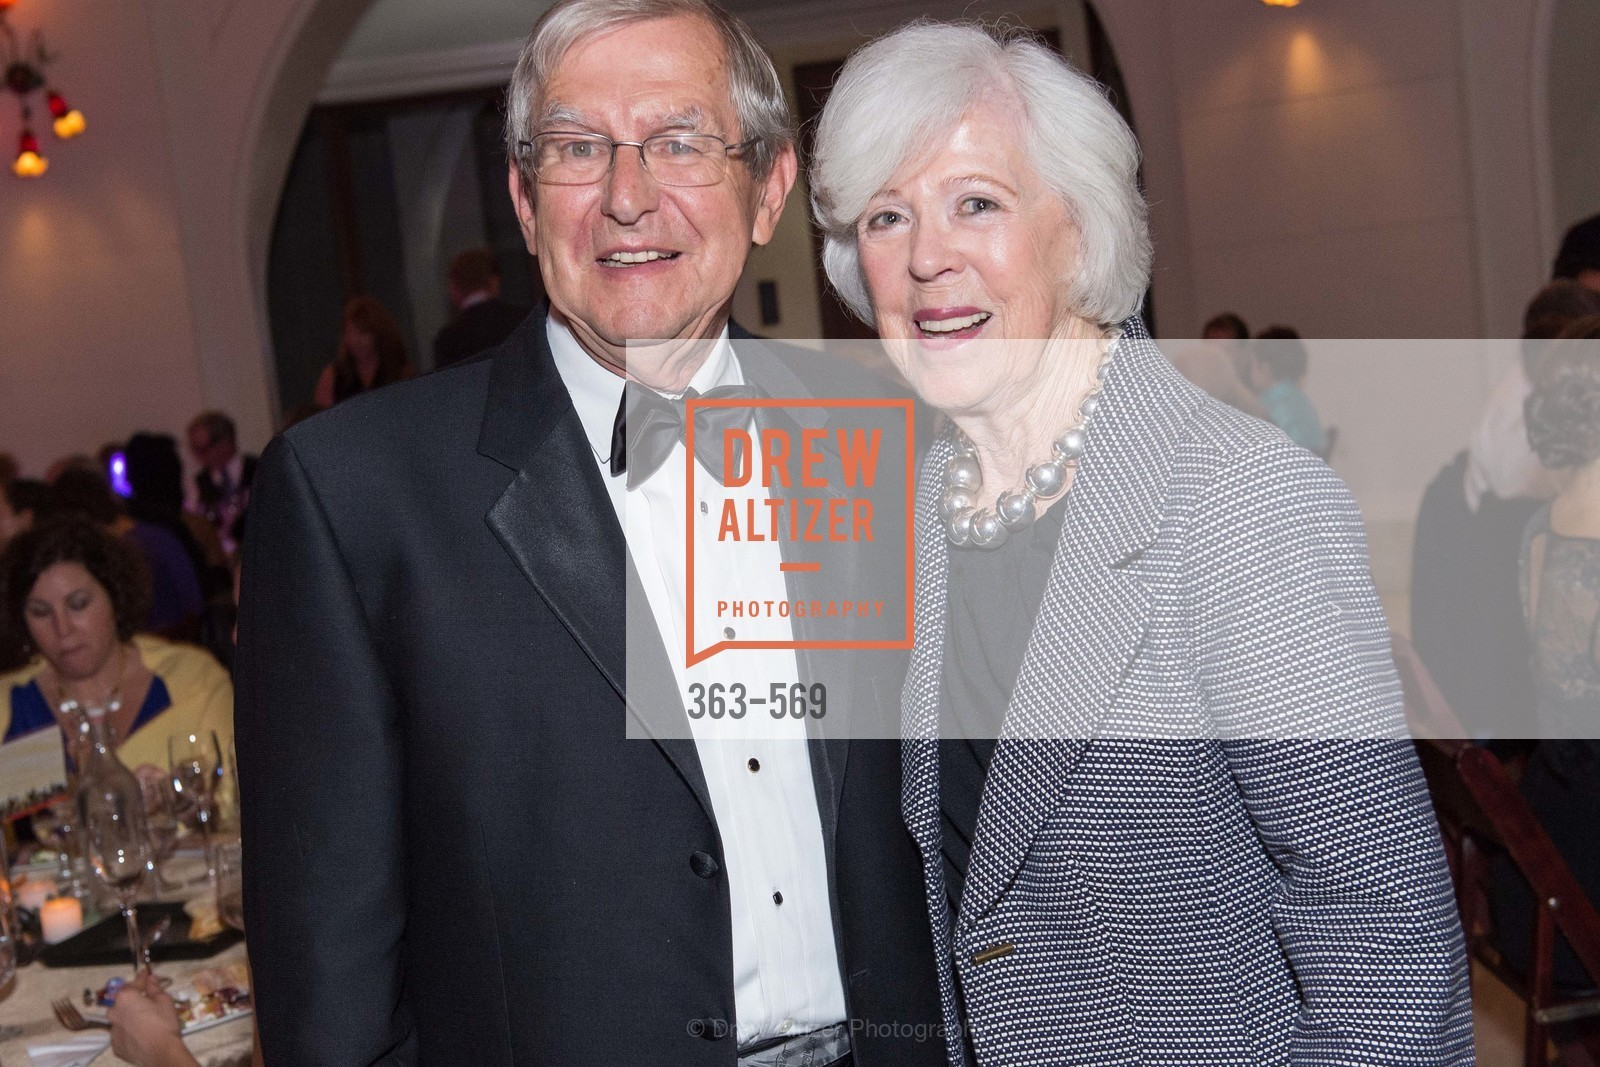 Jack Argabright, Lois Dedemenico, CHABOT Science Center STARLIGHT GALA, US, September 20th, 2014,Drew Altizer, Drew Altizer Photography, full-service agency, private events, San Francisco photographer, photographer california